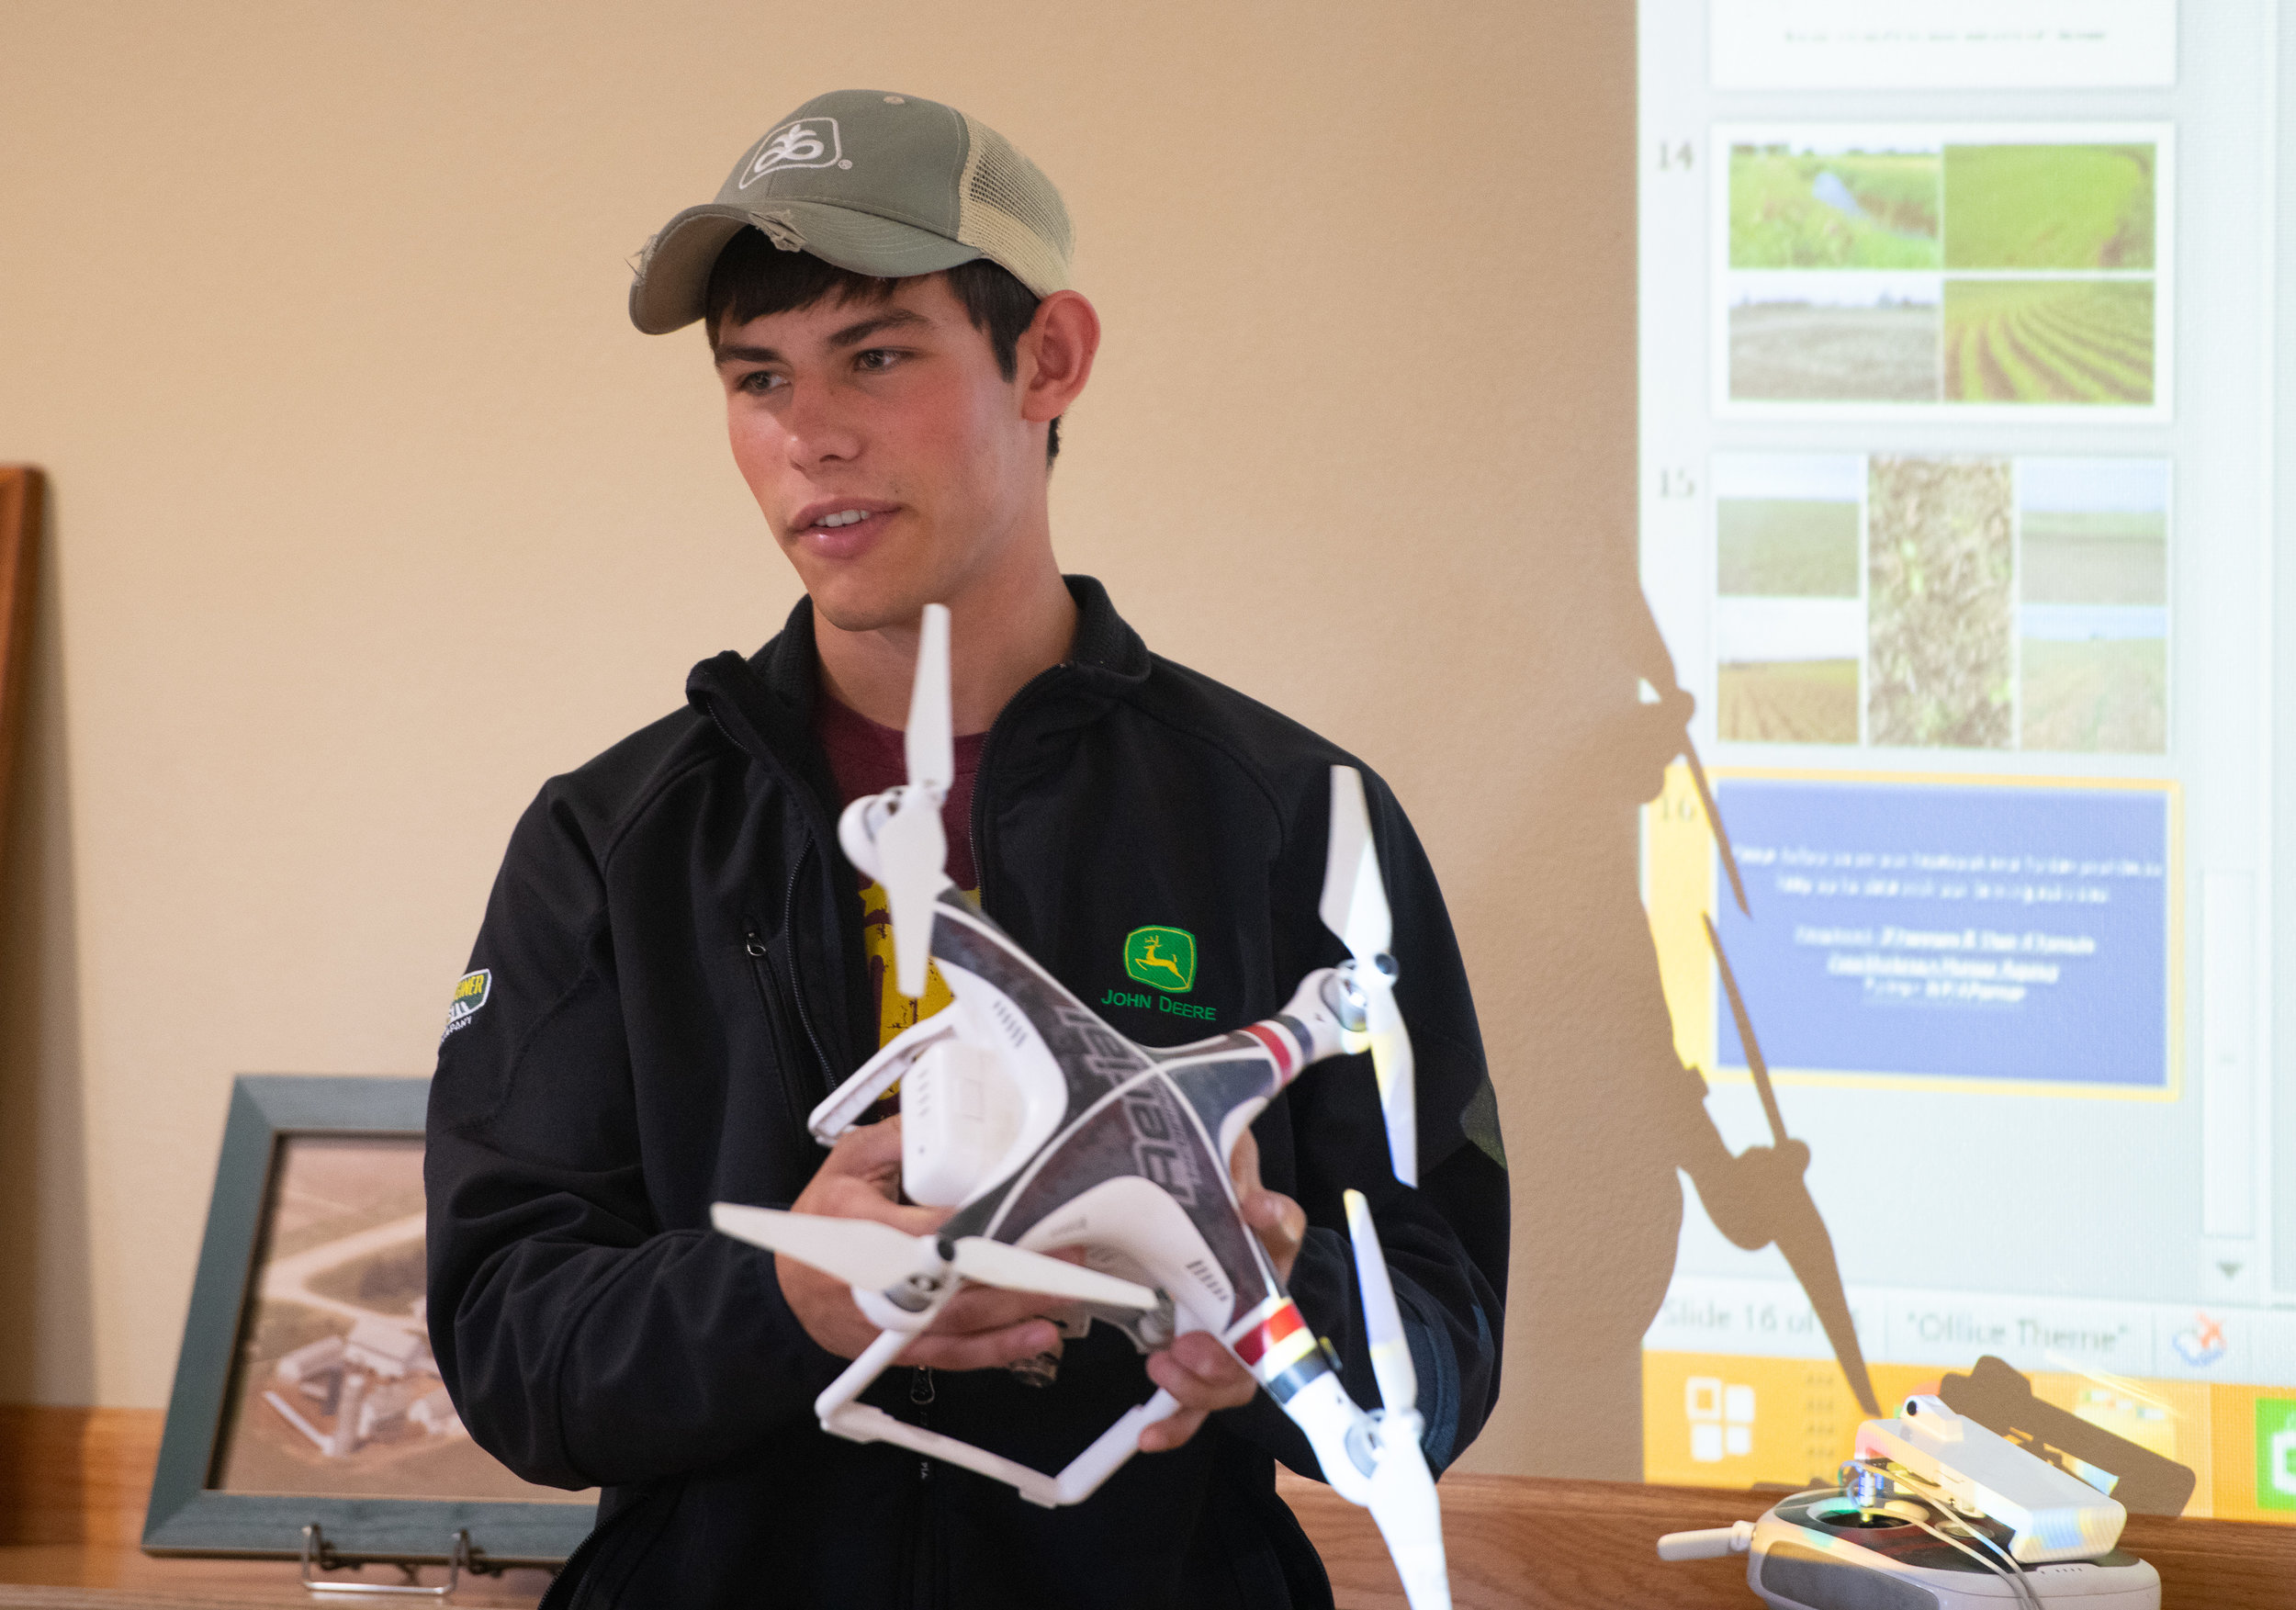 Andrey Shirbroun shares how the family uses drones to monitor crops. Photo credit: Joseph L. Murphy/Iowa Soybean Association